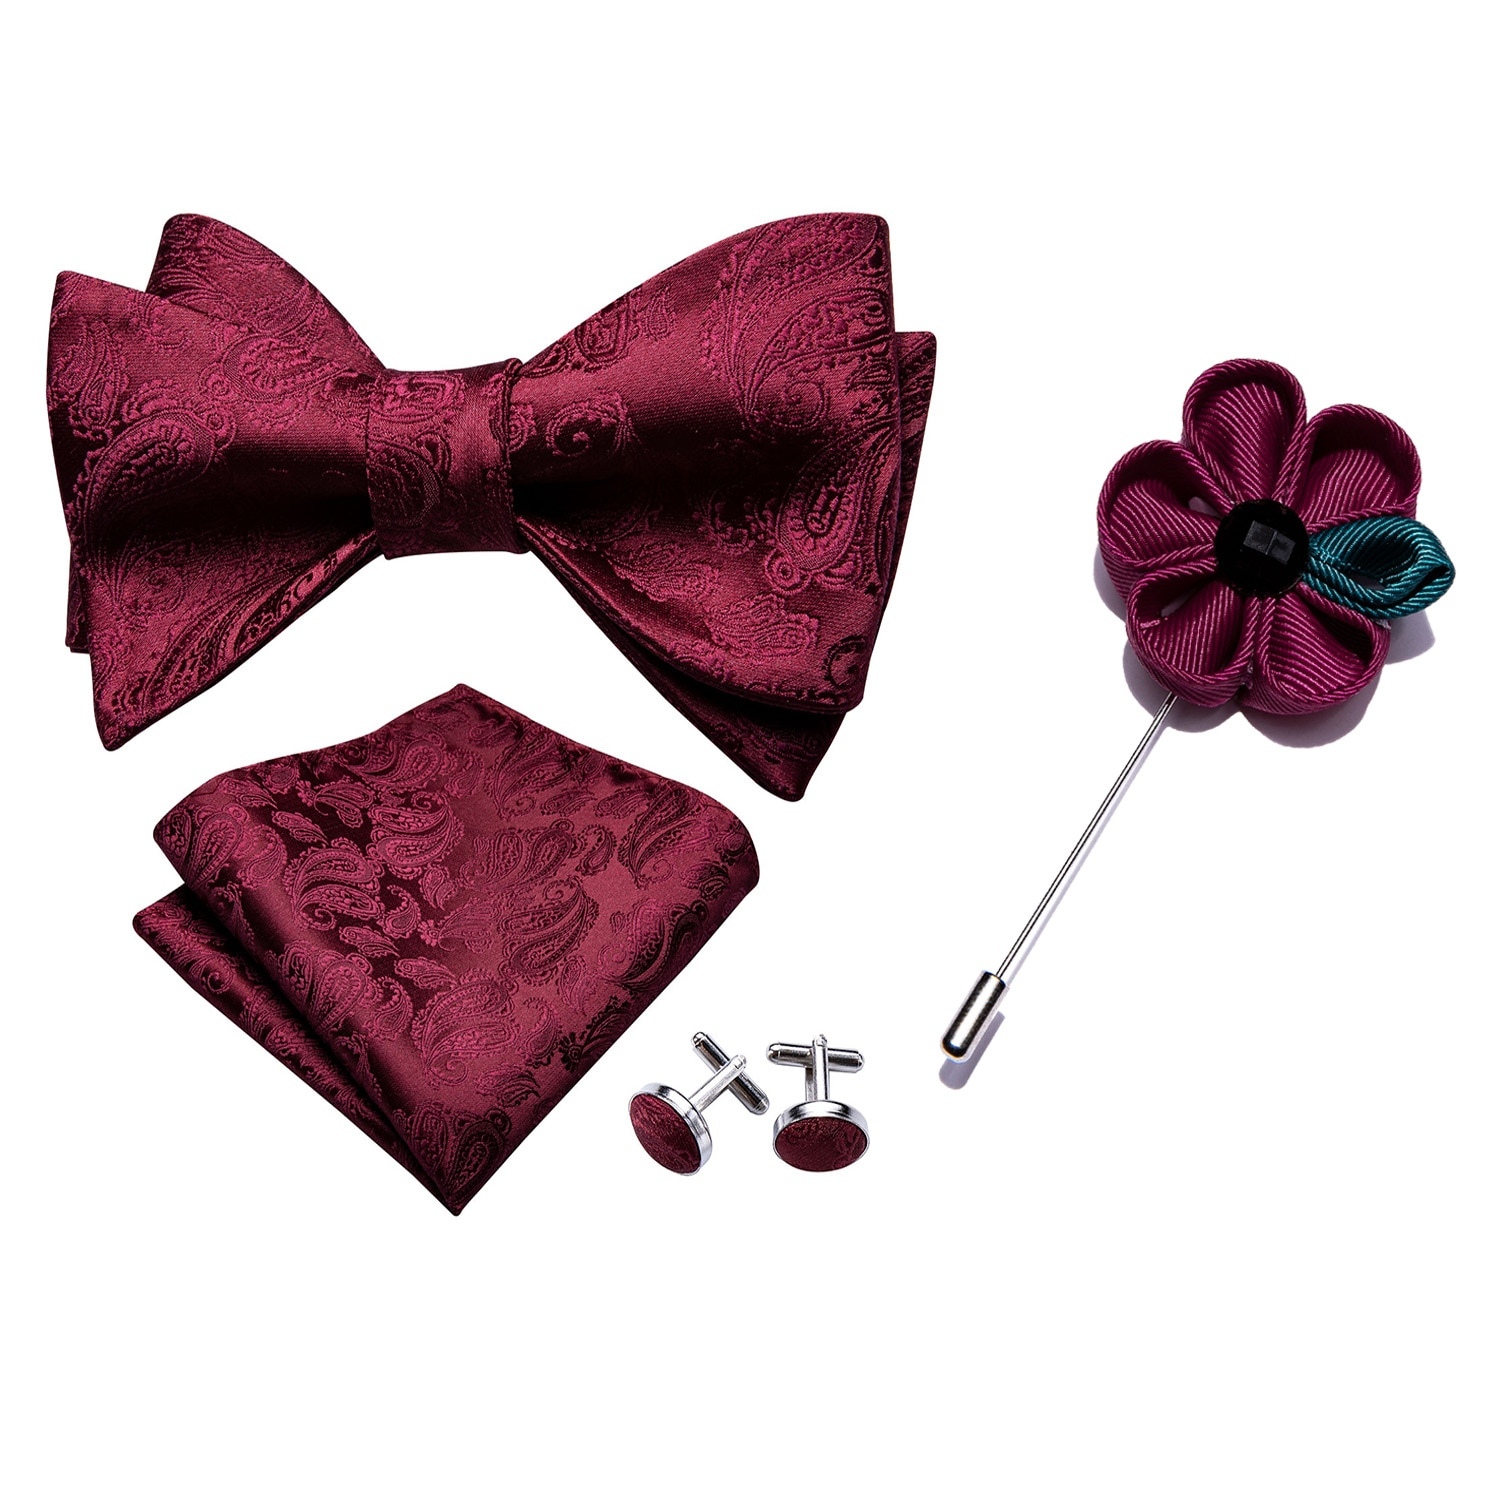 Barry.Wang Men Bowtie Red Self-tied Bows Paisley Burgundy Silk Tie Set Pocket Square Cufflinks Boutonniere for Wedding Party burgundy sexy backless self tie bikini set